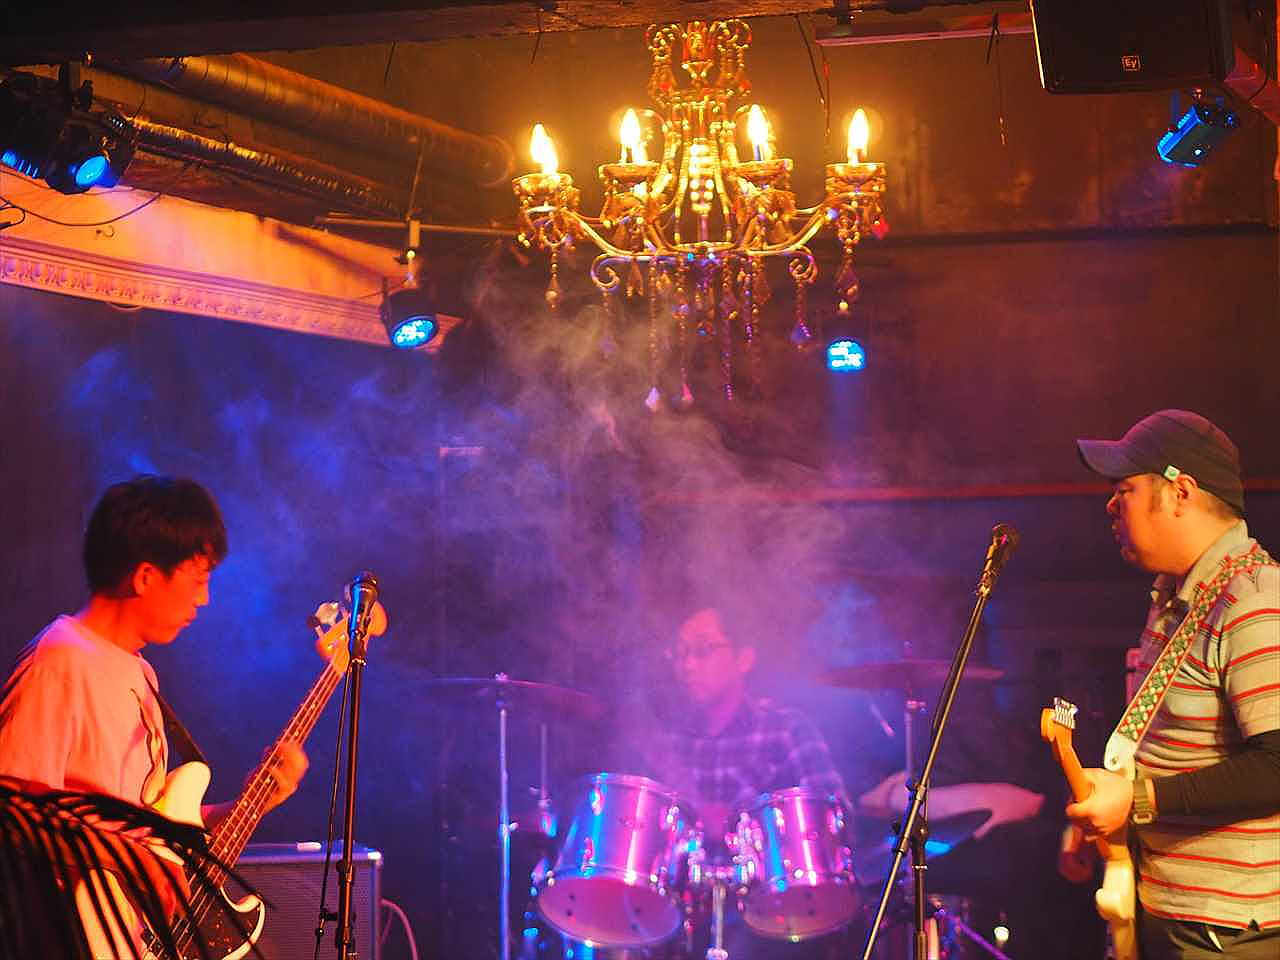 SOFT CREAM LIVE & BAR Funky Chicken 徳島ロックストリート vol.16